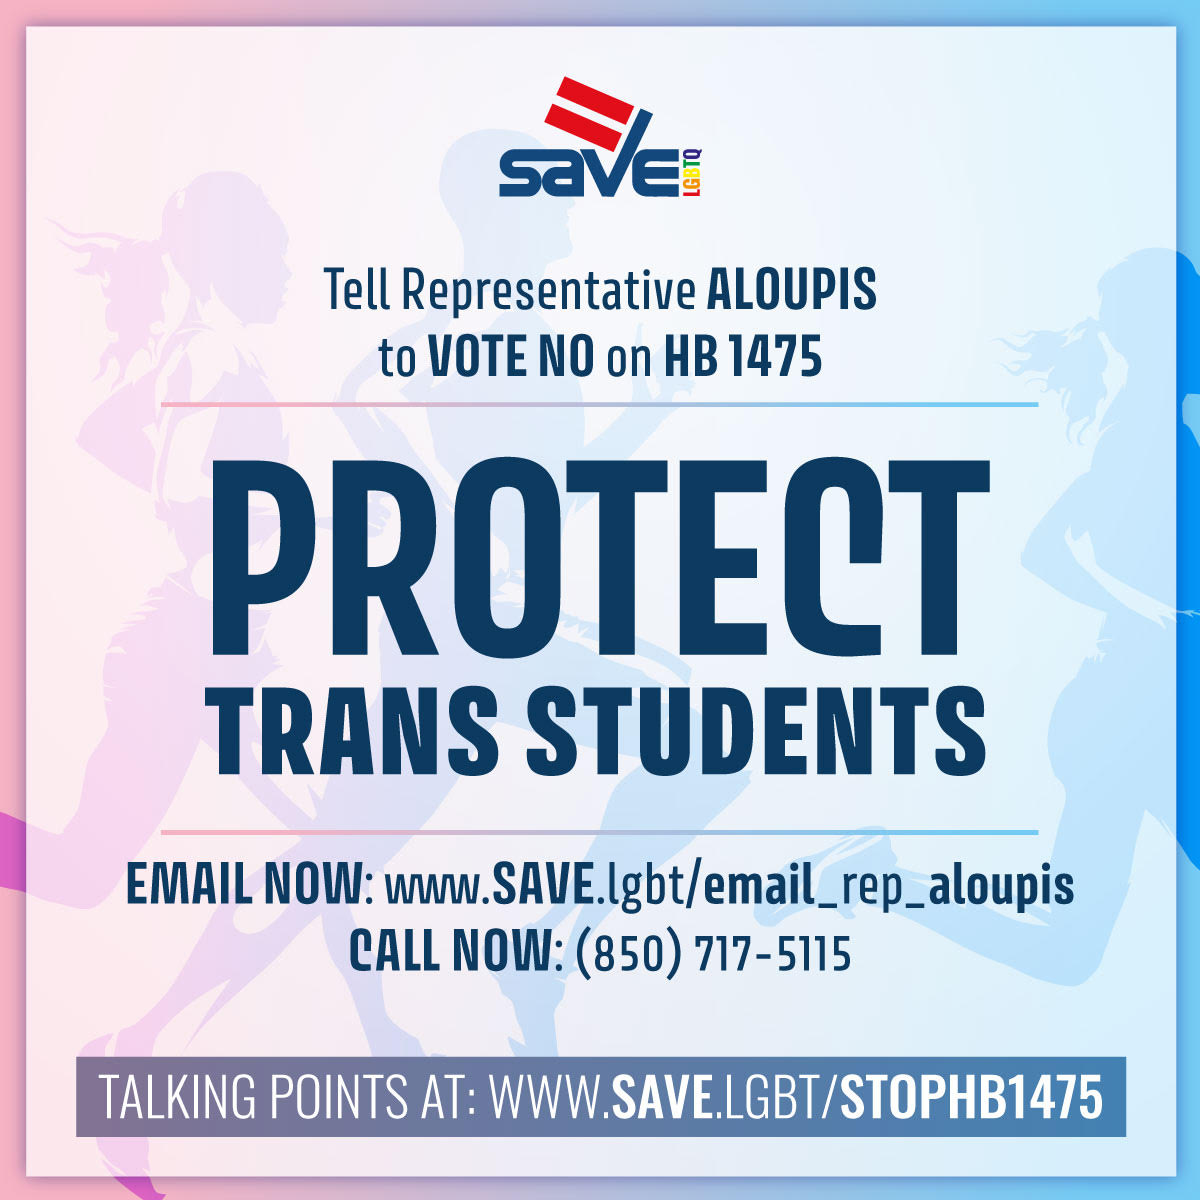 Tell Rep. Aloupis to vote NO on HB 1475